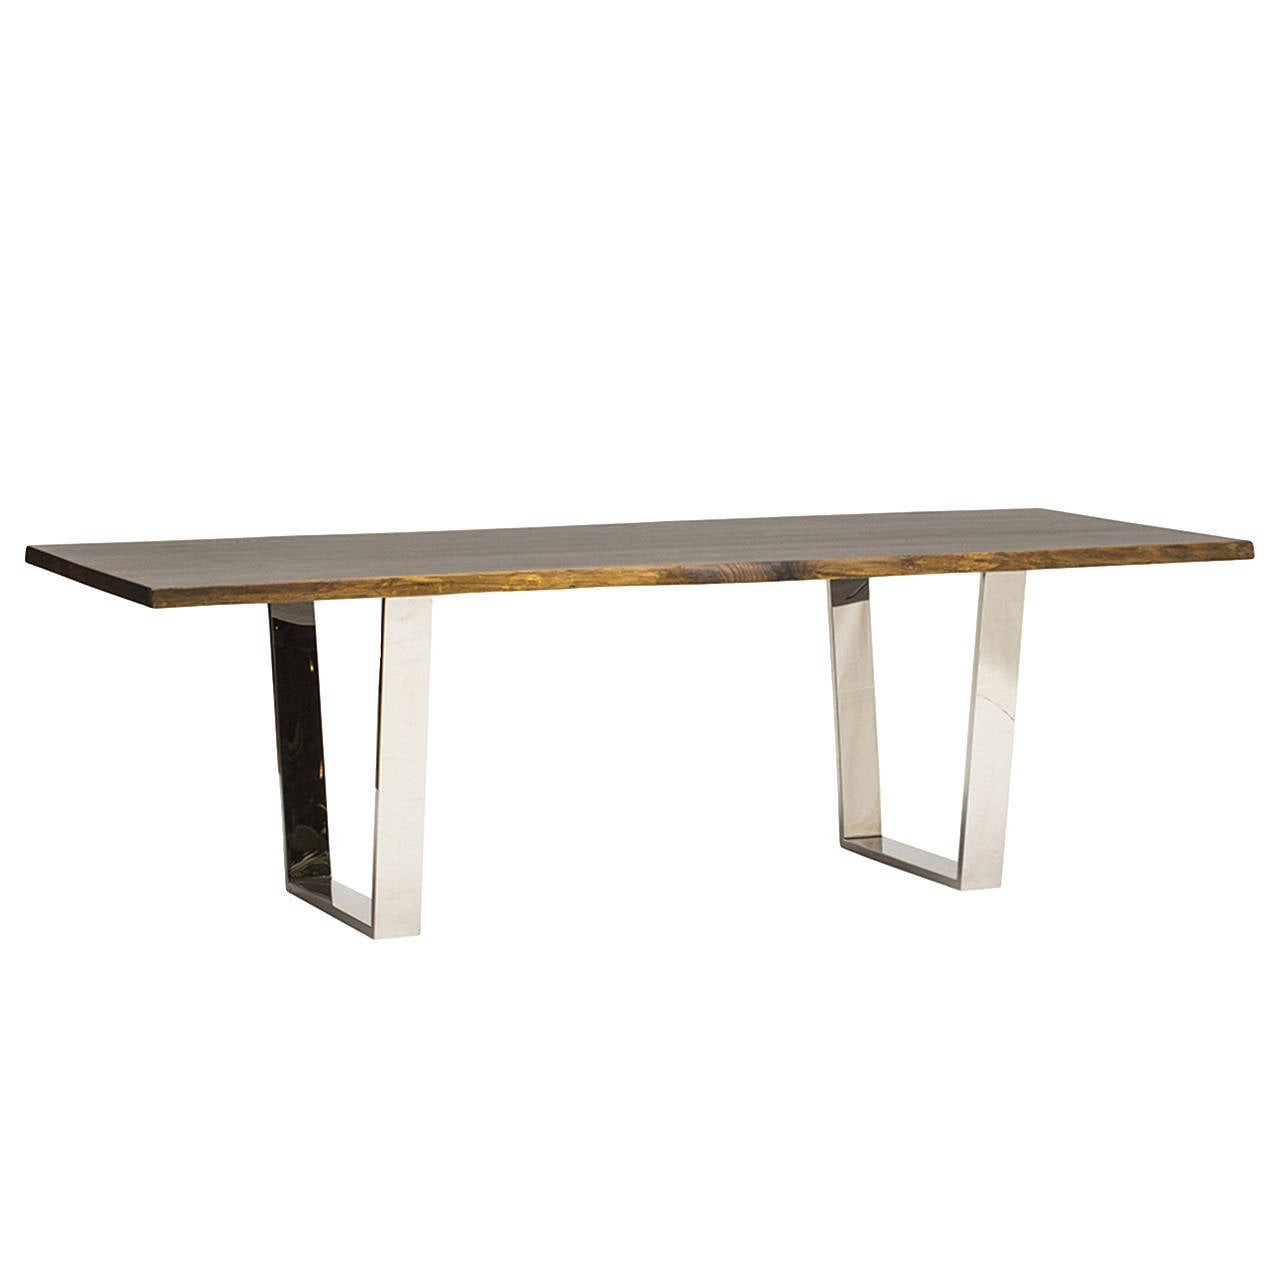 Contemporary seared oak dining table for sale at 1stdibs for Modern oak dining table